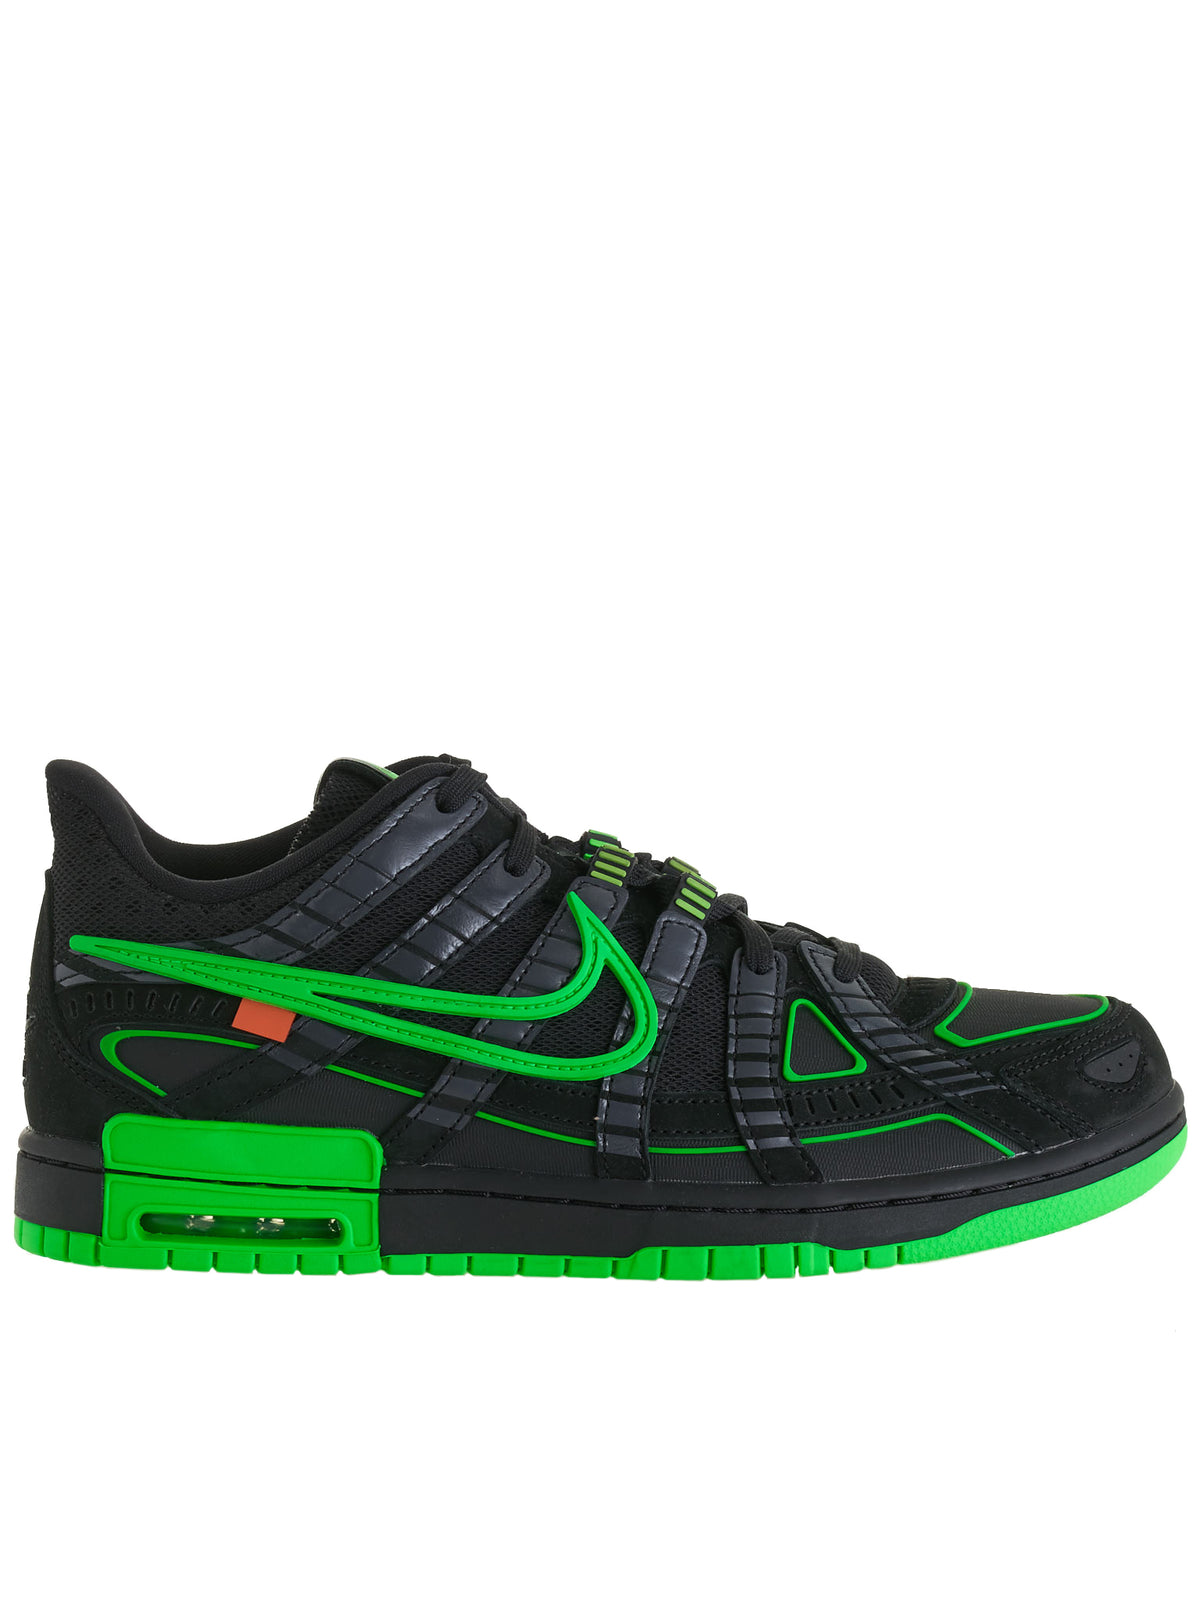 Nike Air Rubber Dunk Low OW (CU6015-001-BLACK-GREEN)